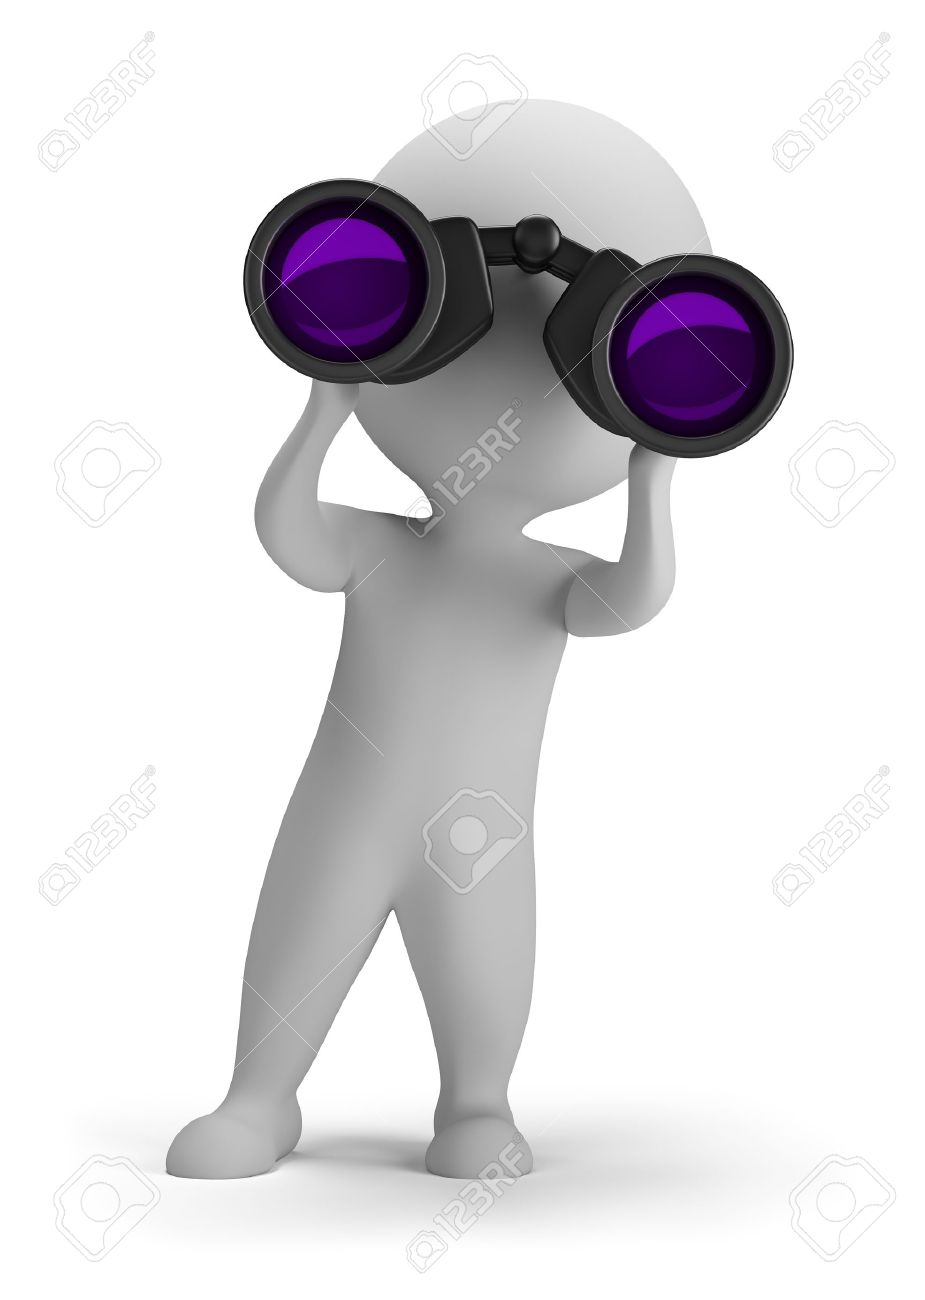 3d small person looking through binoculars. 3d image. Isolated white background. - 15066838